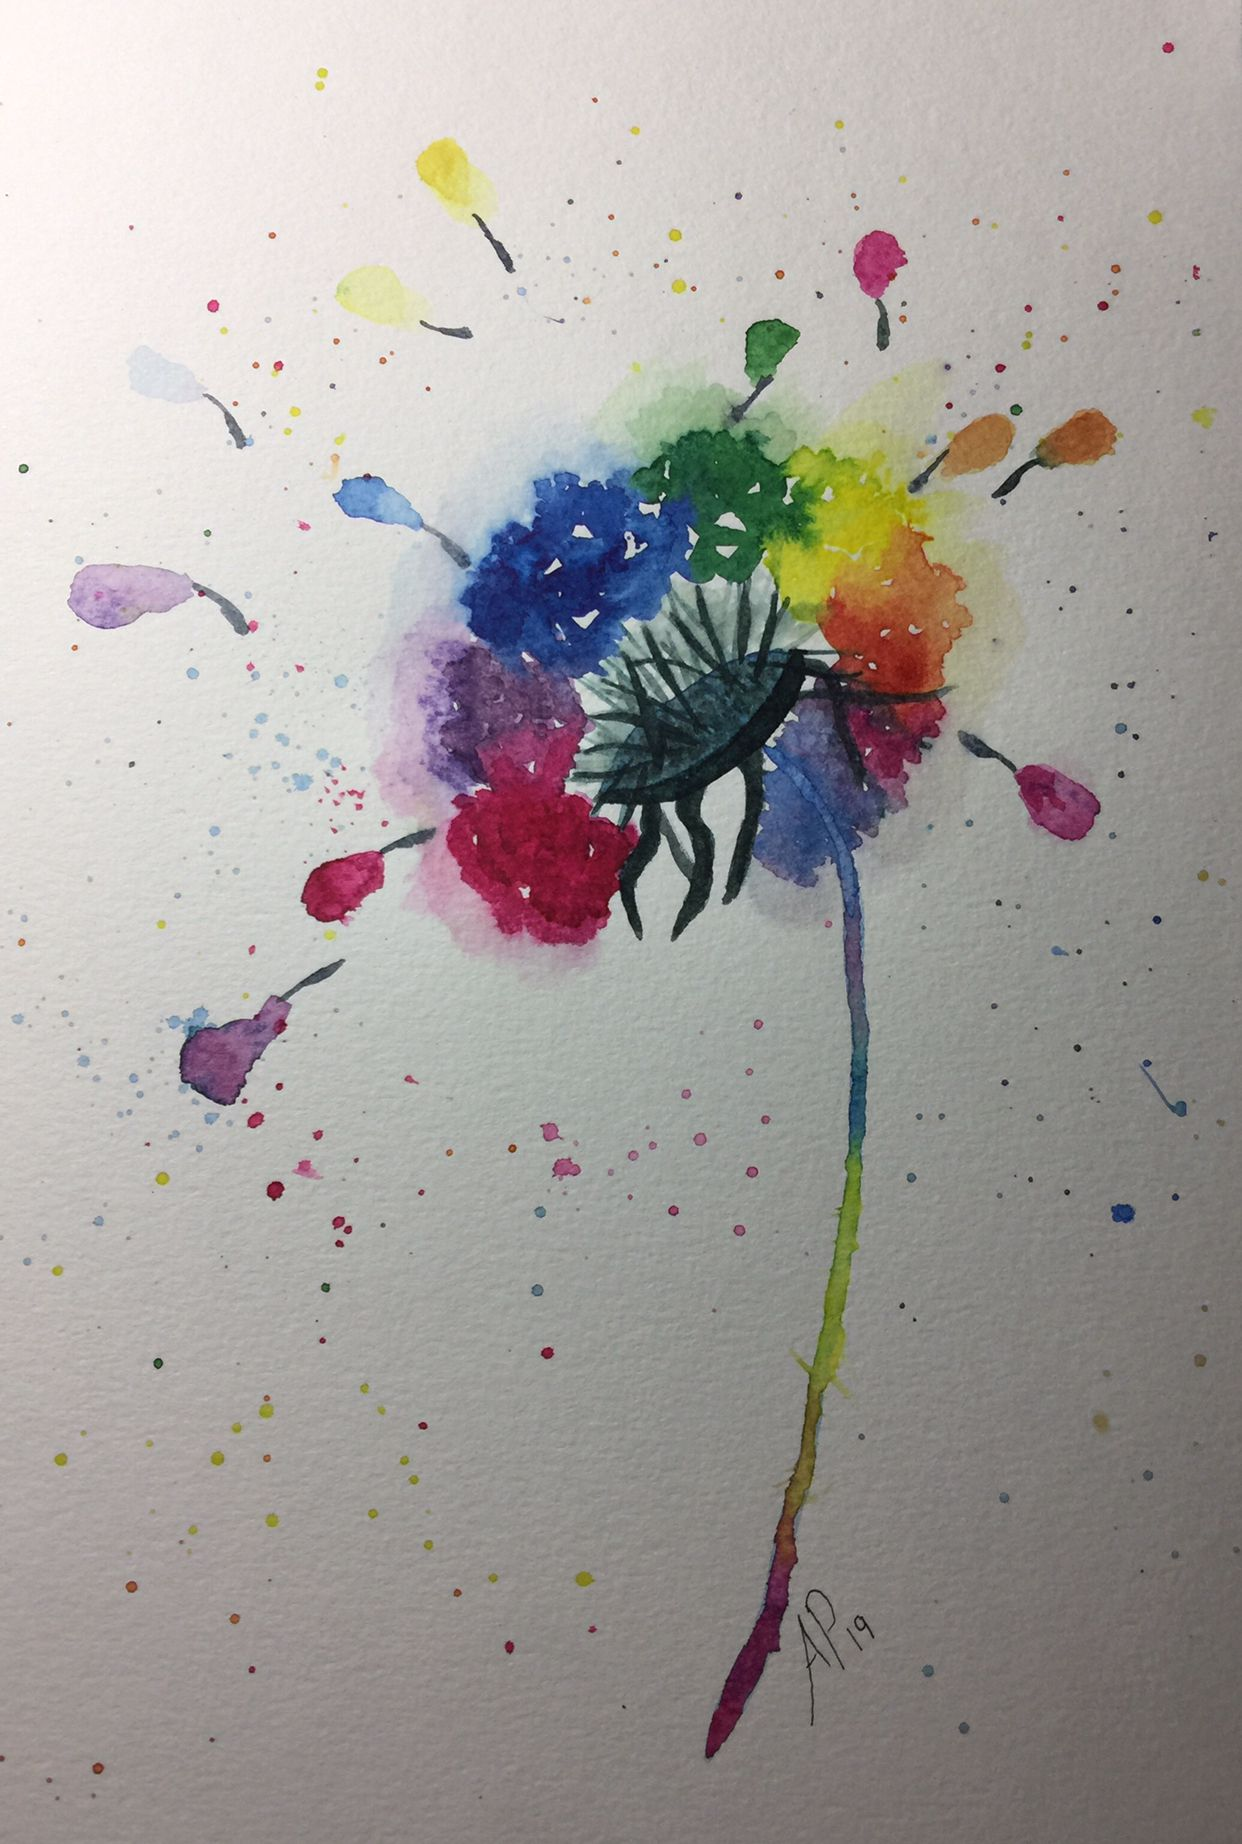 Watercolor Dandelions Rainbow Wishes Amy Pinker Art Sarah